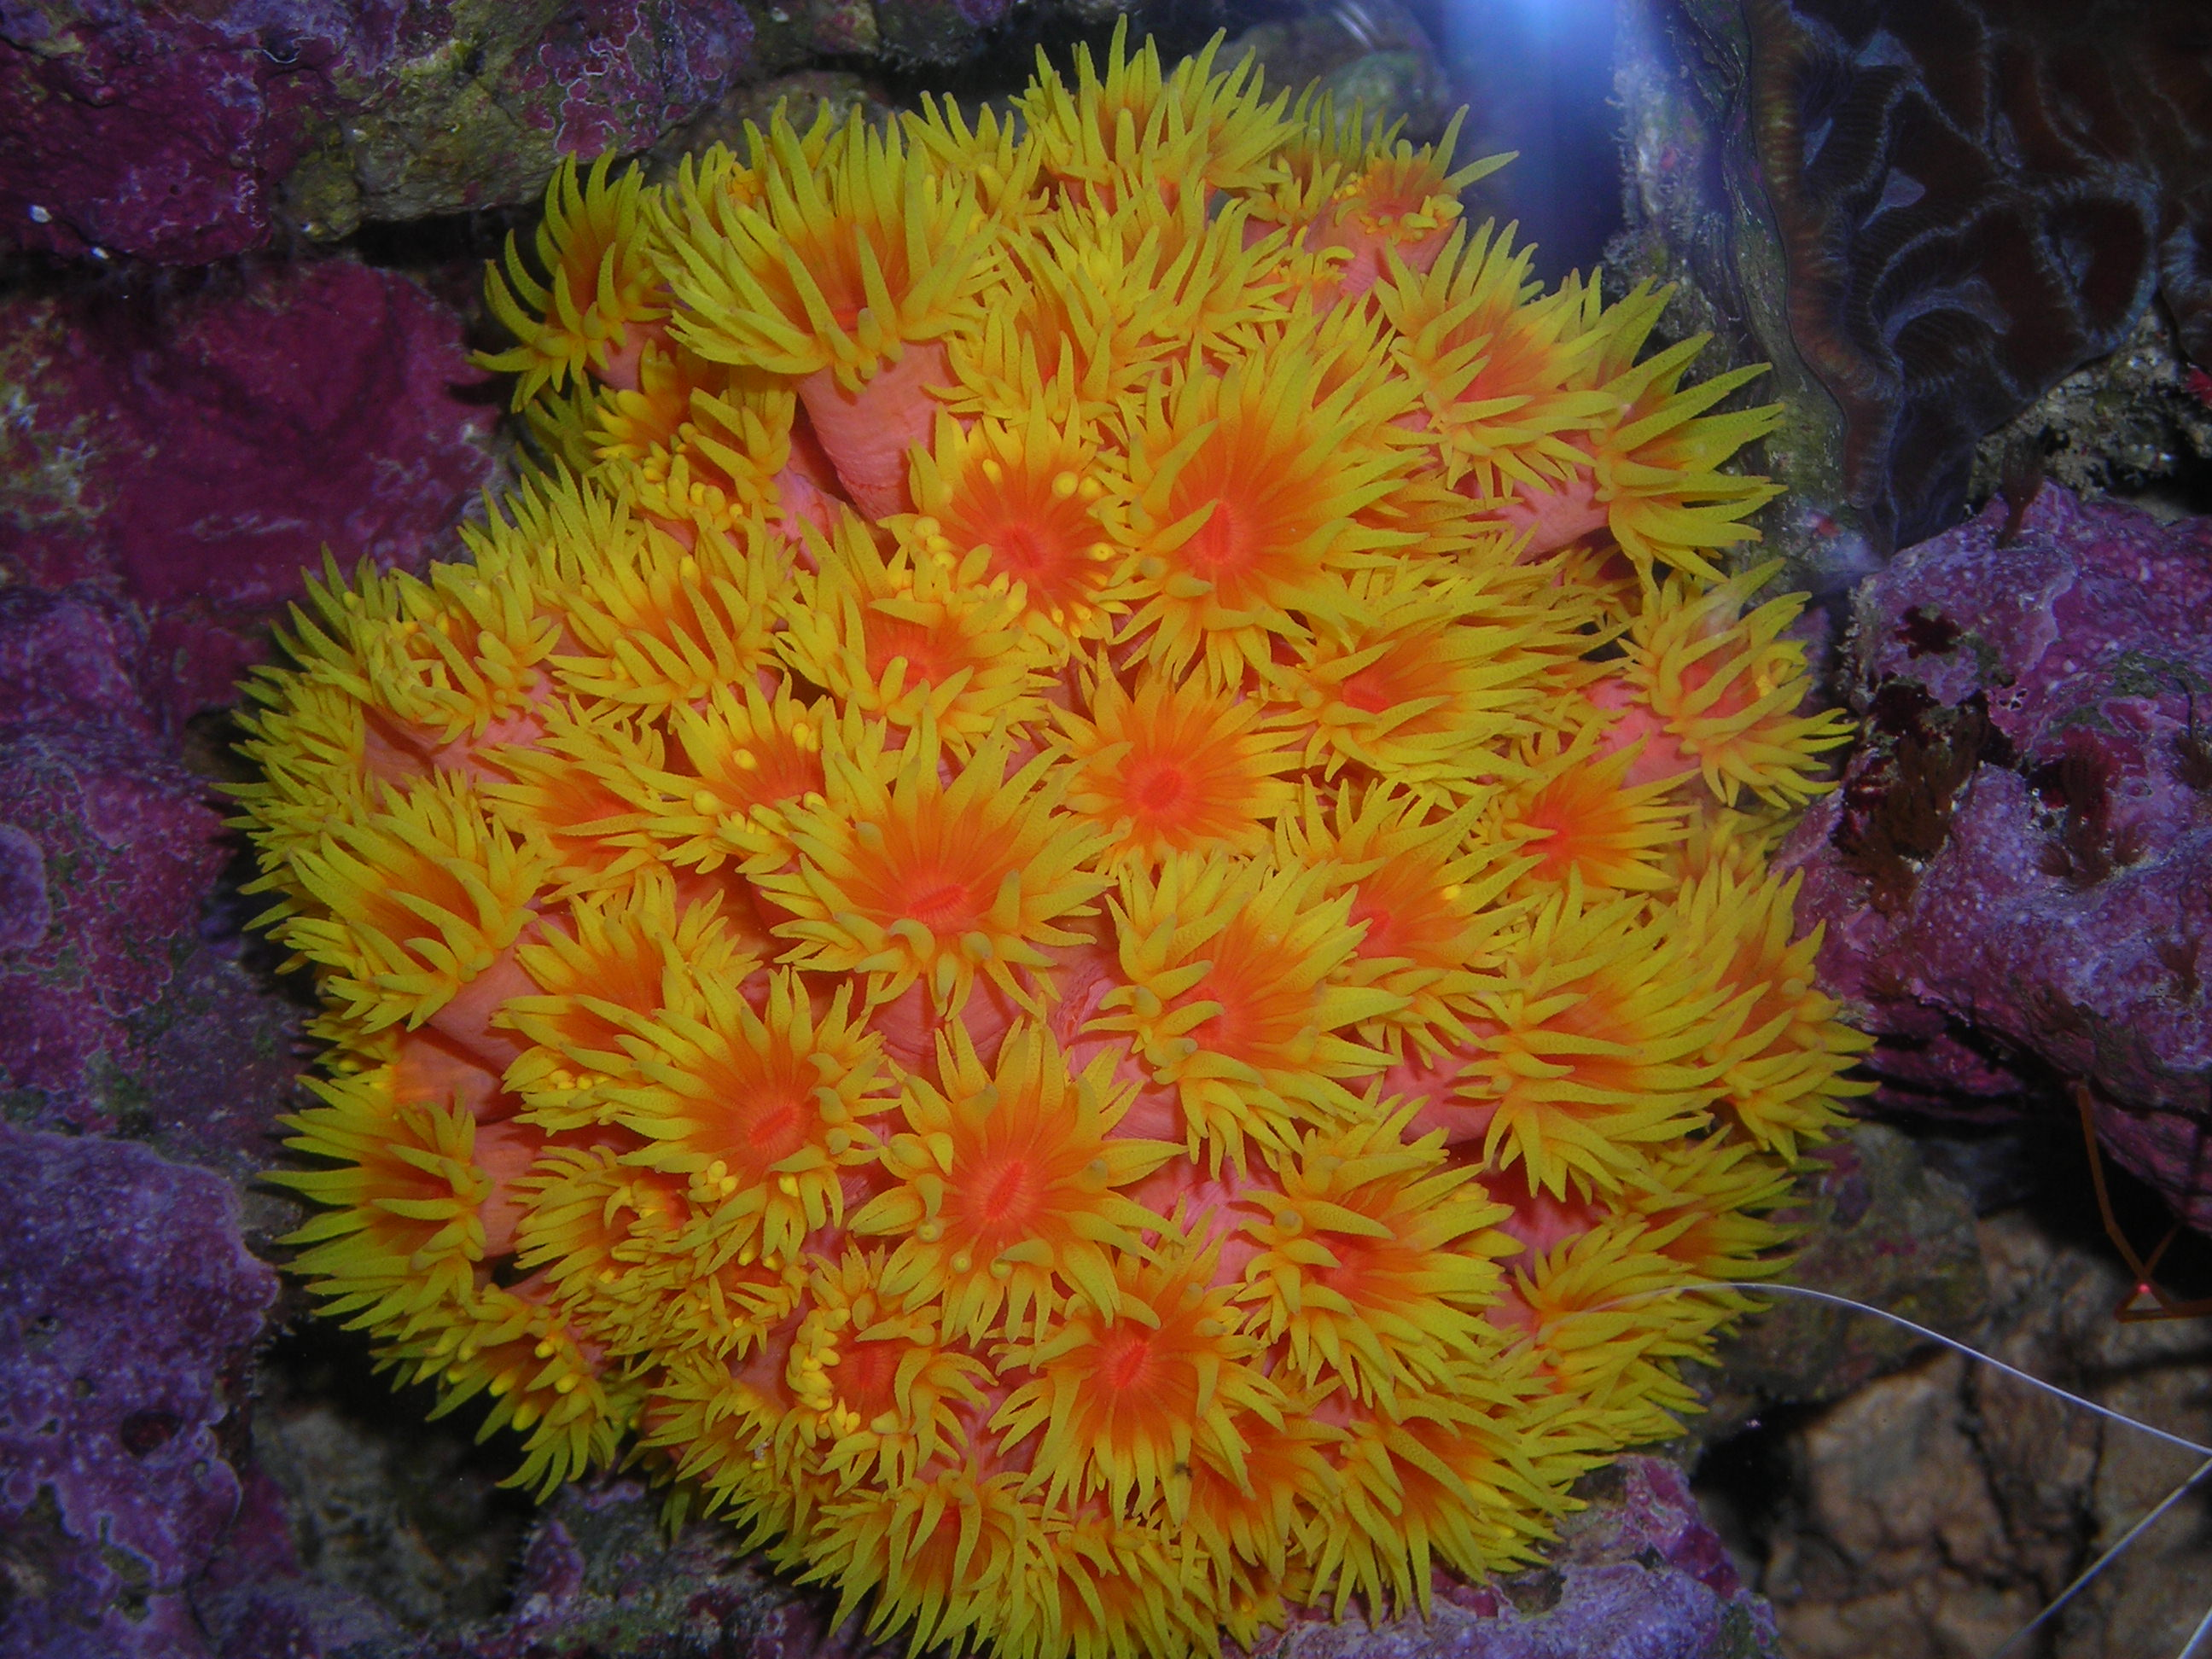 Best Selection of Healthy Corals (Cnidarians) to Buy in NJ at Reduced Prices: NPS (Non-Photosynthetic Corals) Alcyonaria